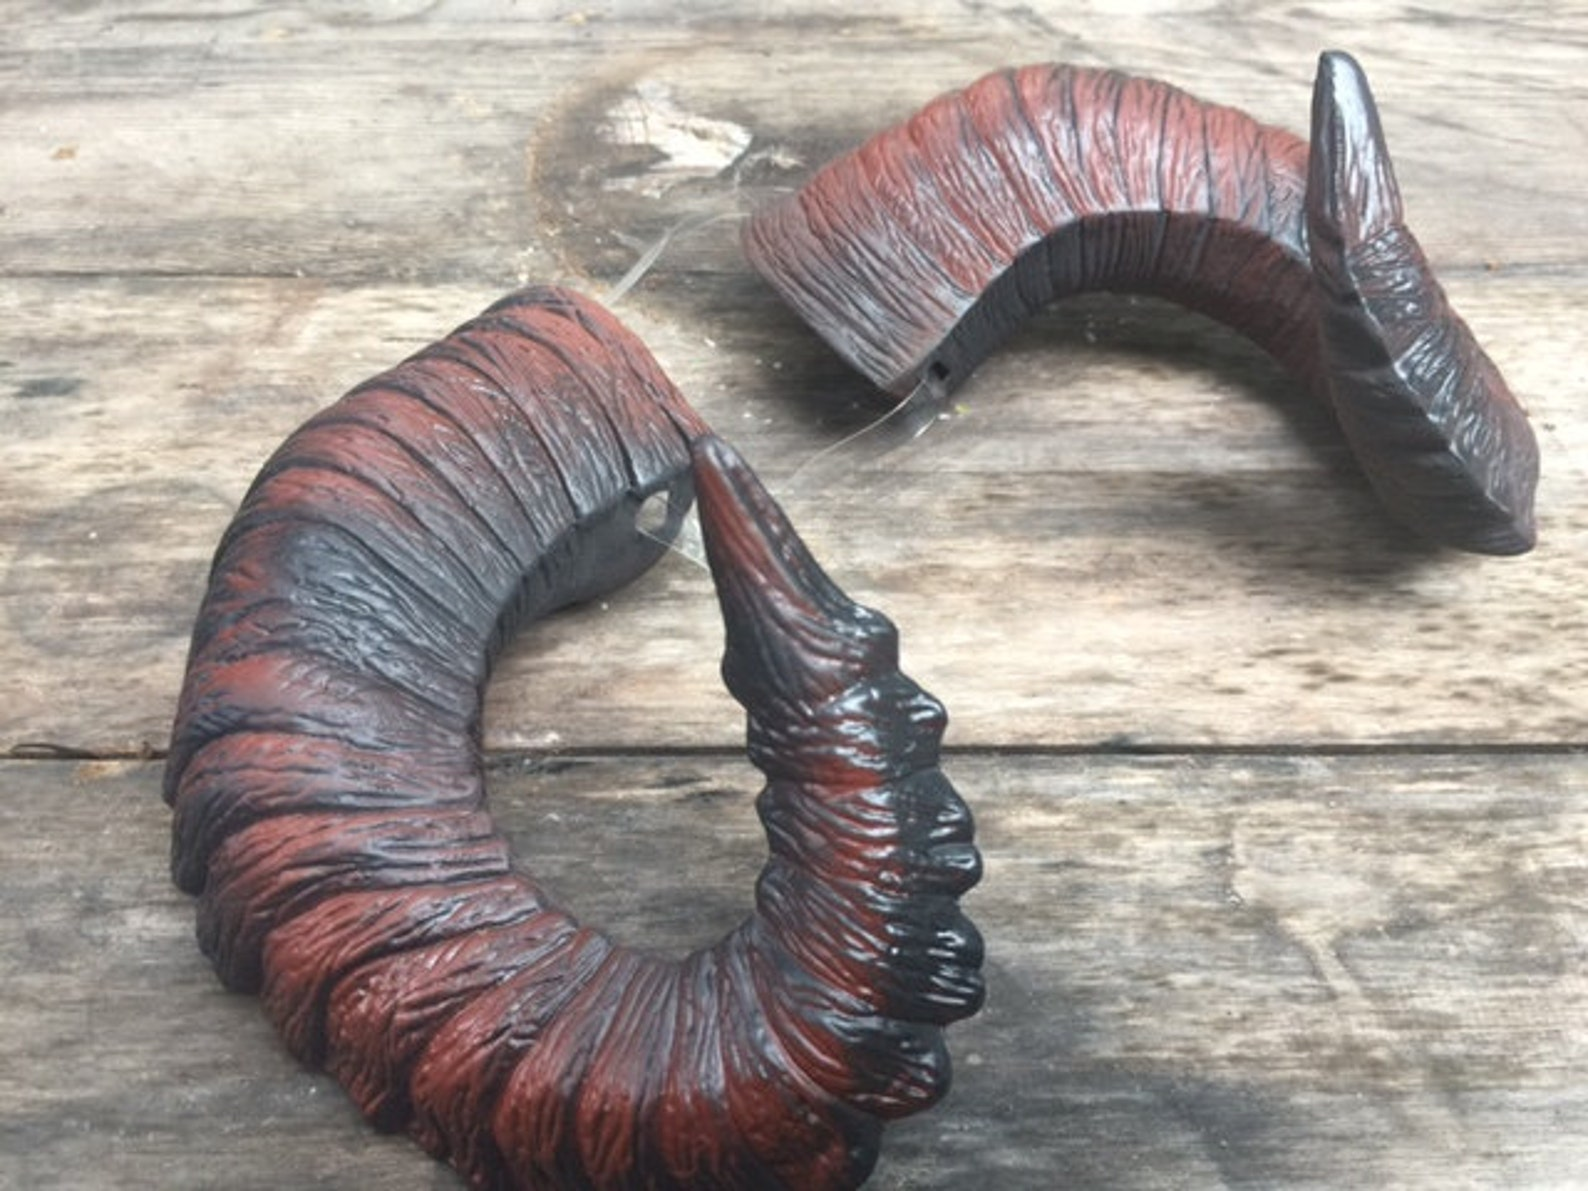 S 21 inch Sheep//Ram horn for horn carving taxidermy to make shofar